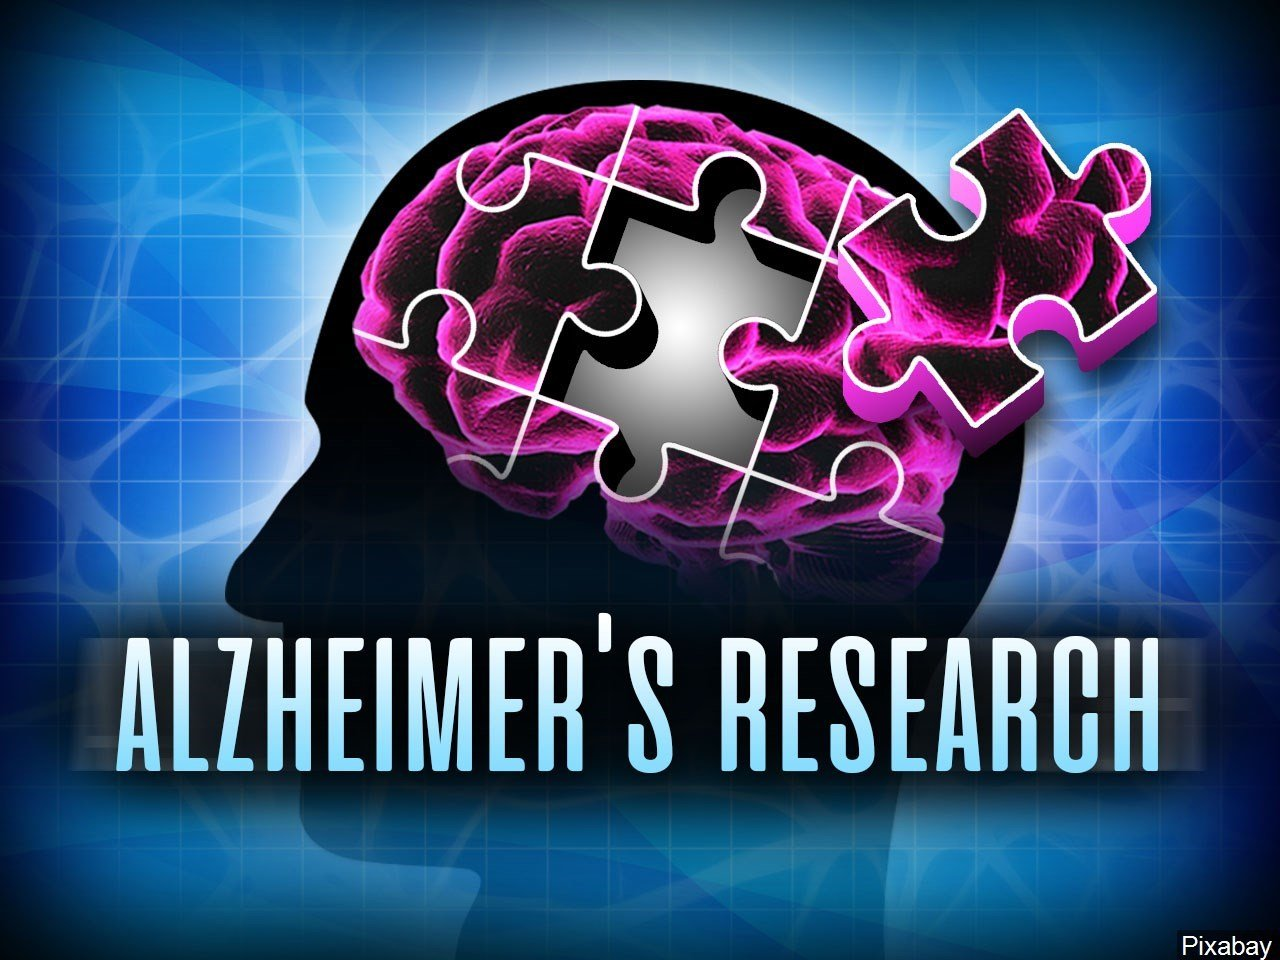 New evidence that viruses may play a role in Alzheimer's